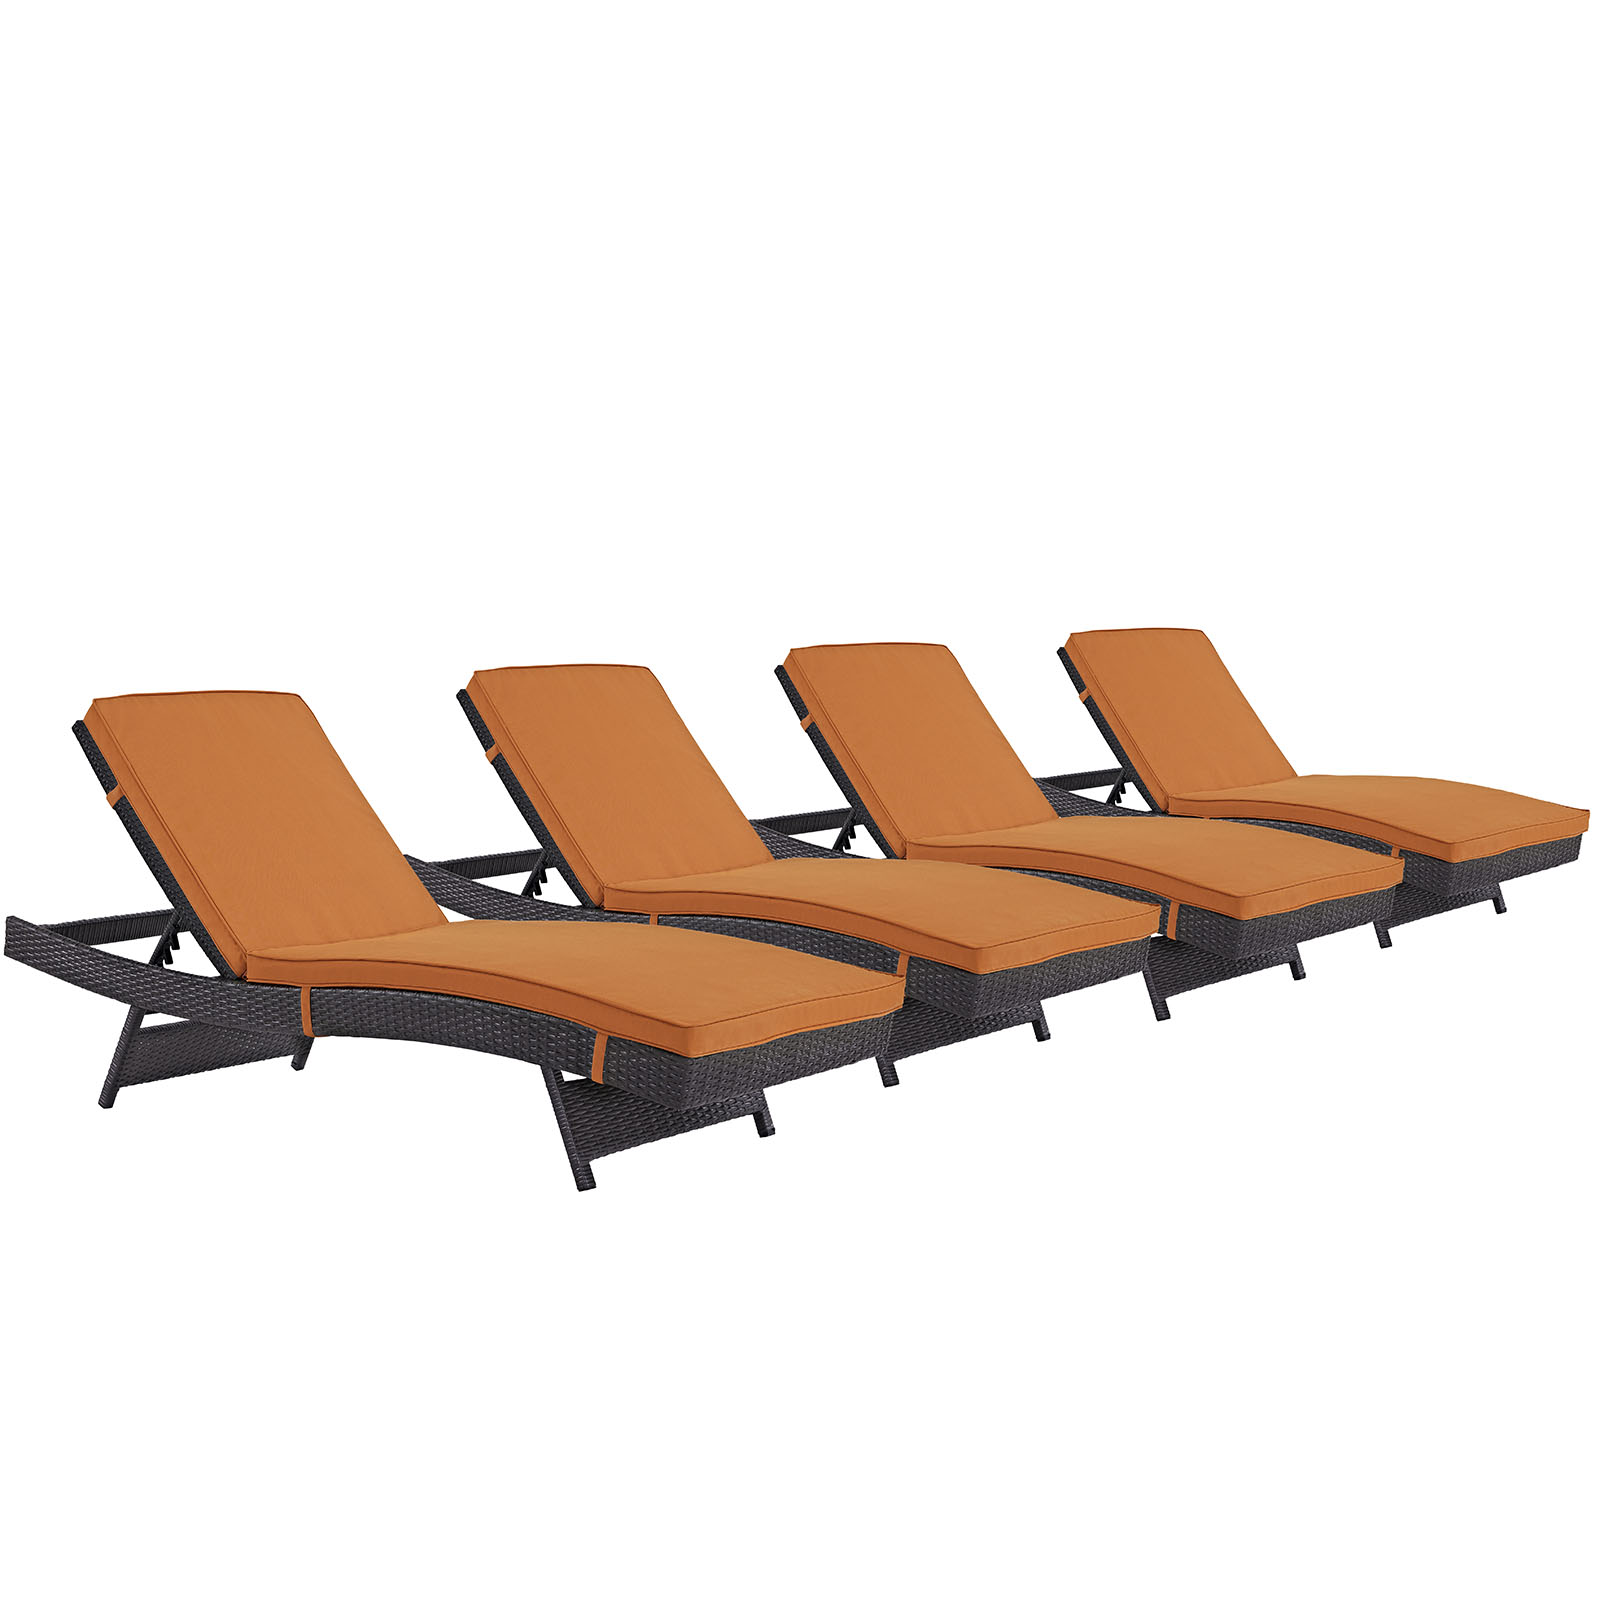 Modern Contemporary Urban Design Outdoor Patio Balcony Chaise Lounge Chair ( Set of 4), Orange, Rattan